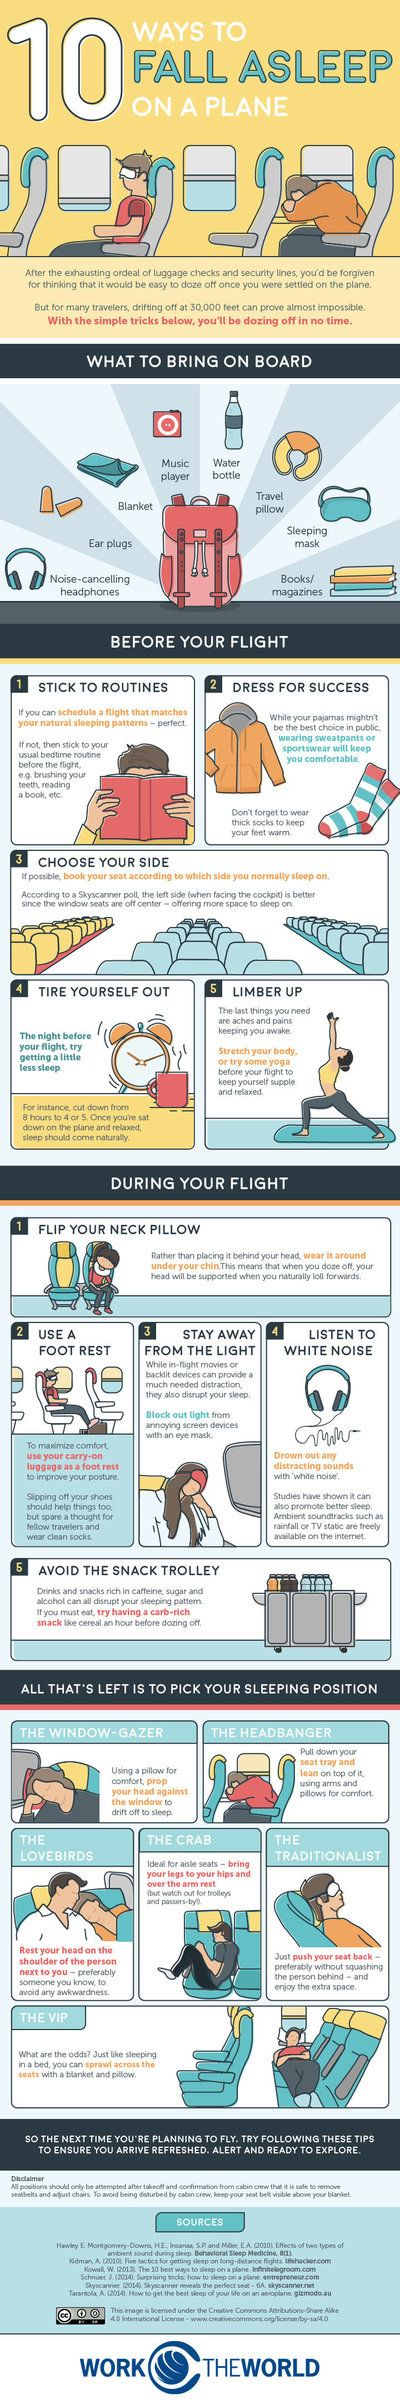 10 Tricks For Falling Asleep On A Plane -- And Staying That Way